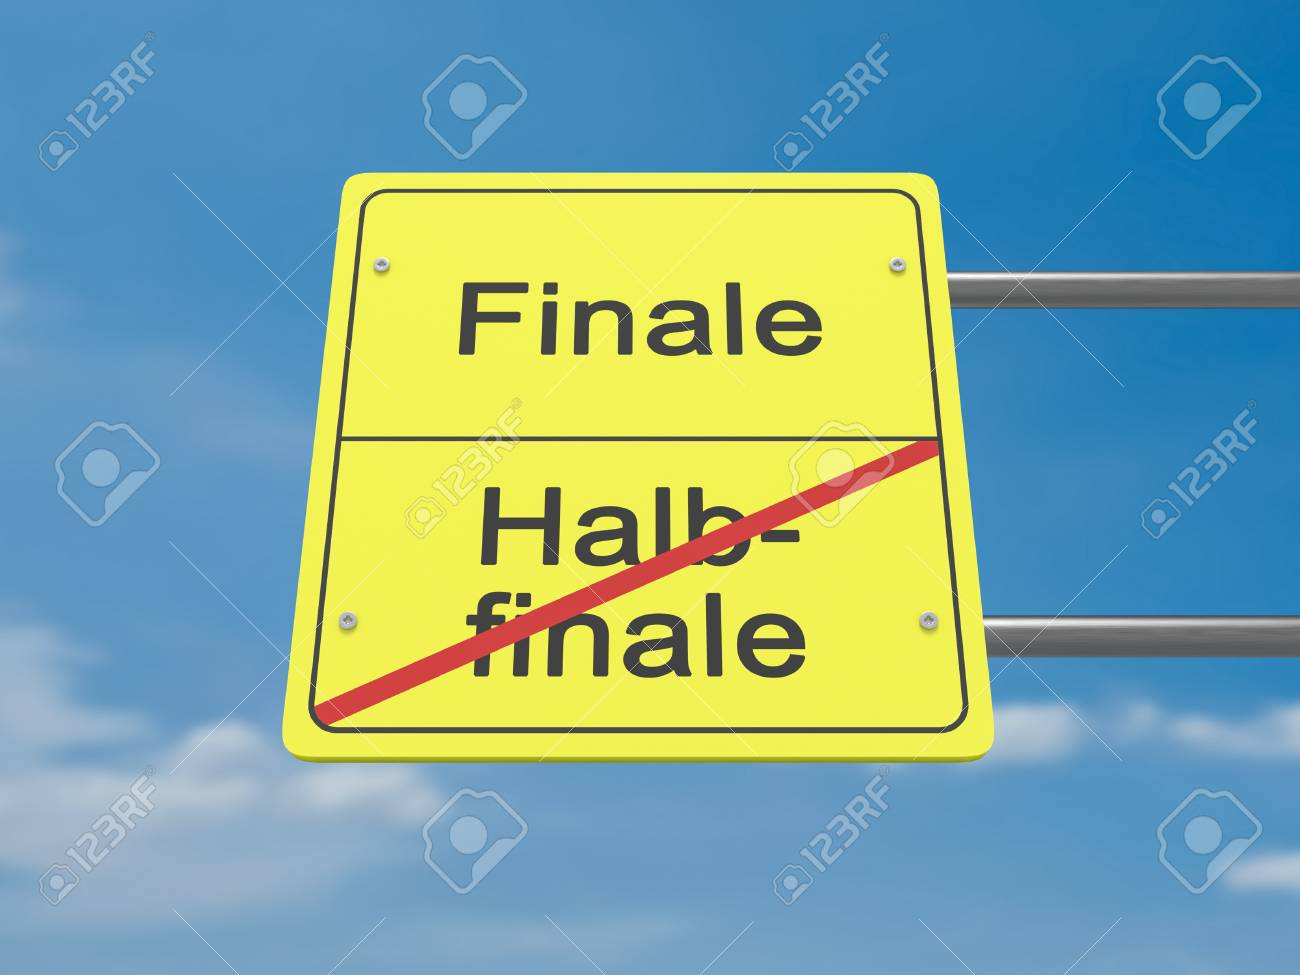 Sport News Concept Road Sign Halbfinale Und Finale Meaning Stock Photo Picture And Royalty Free Image Image 77014207